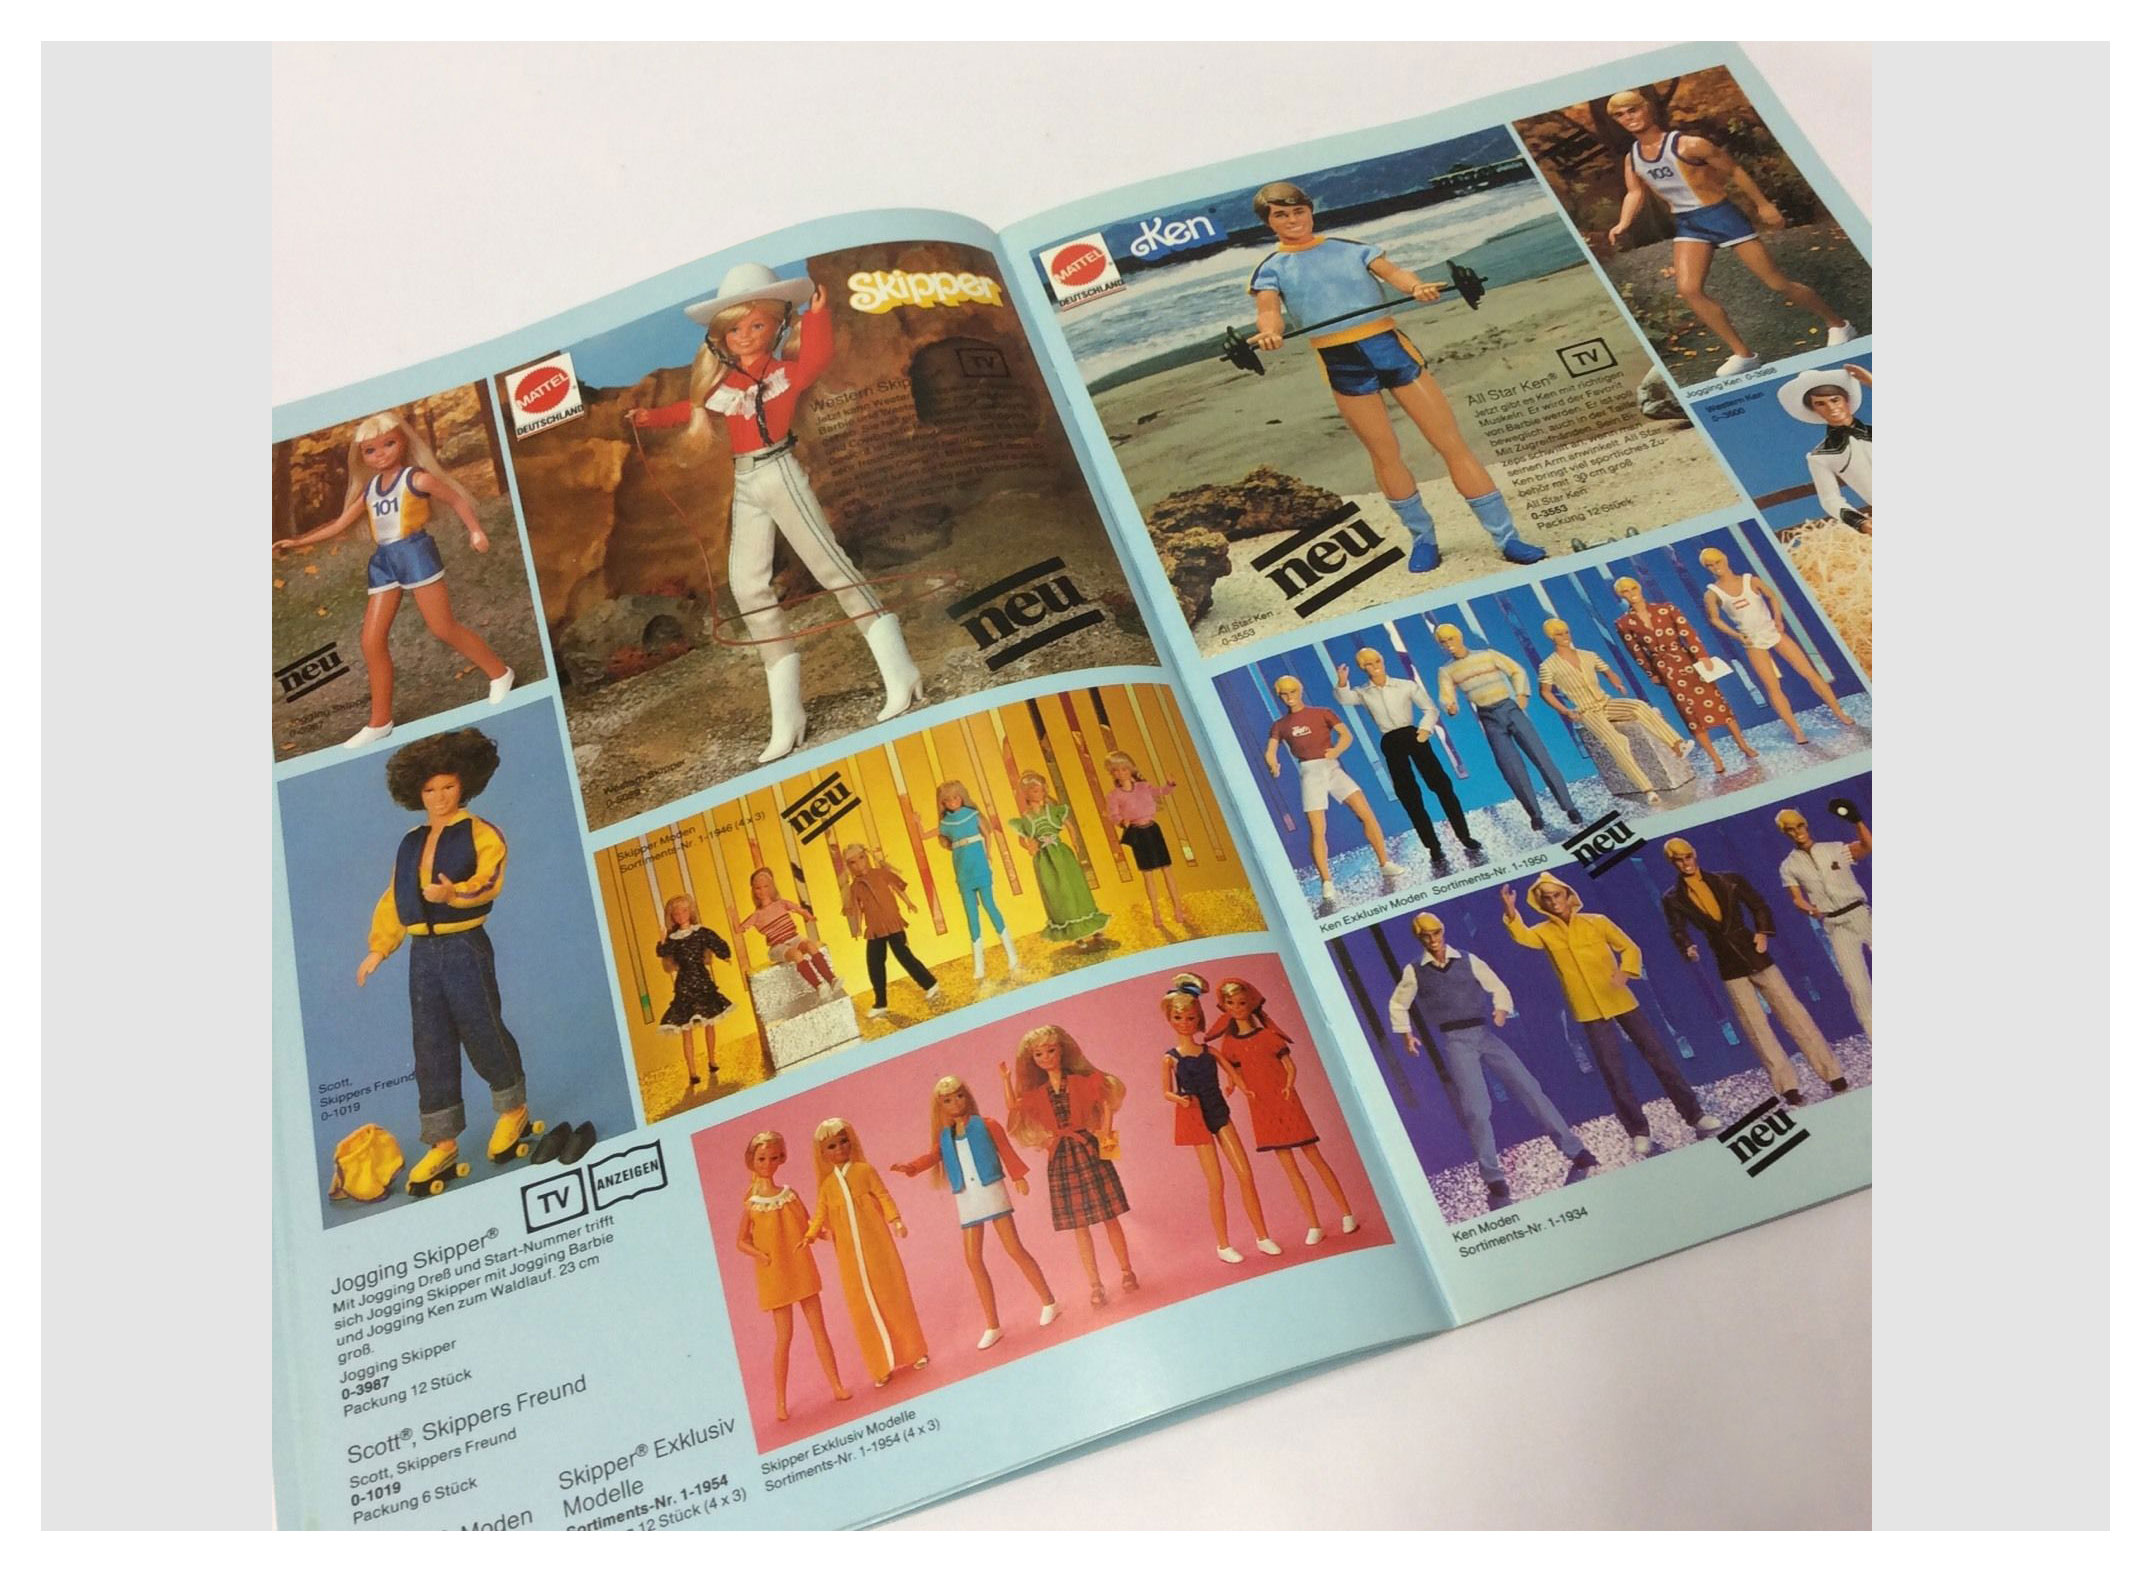 From 1982 German Mattel catalogue